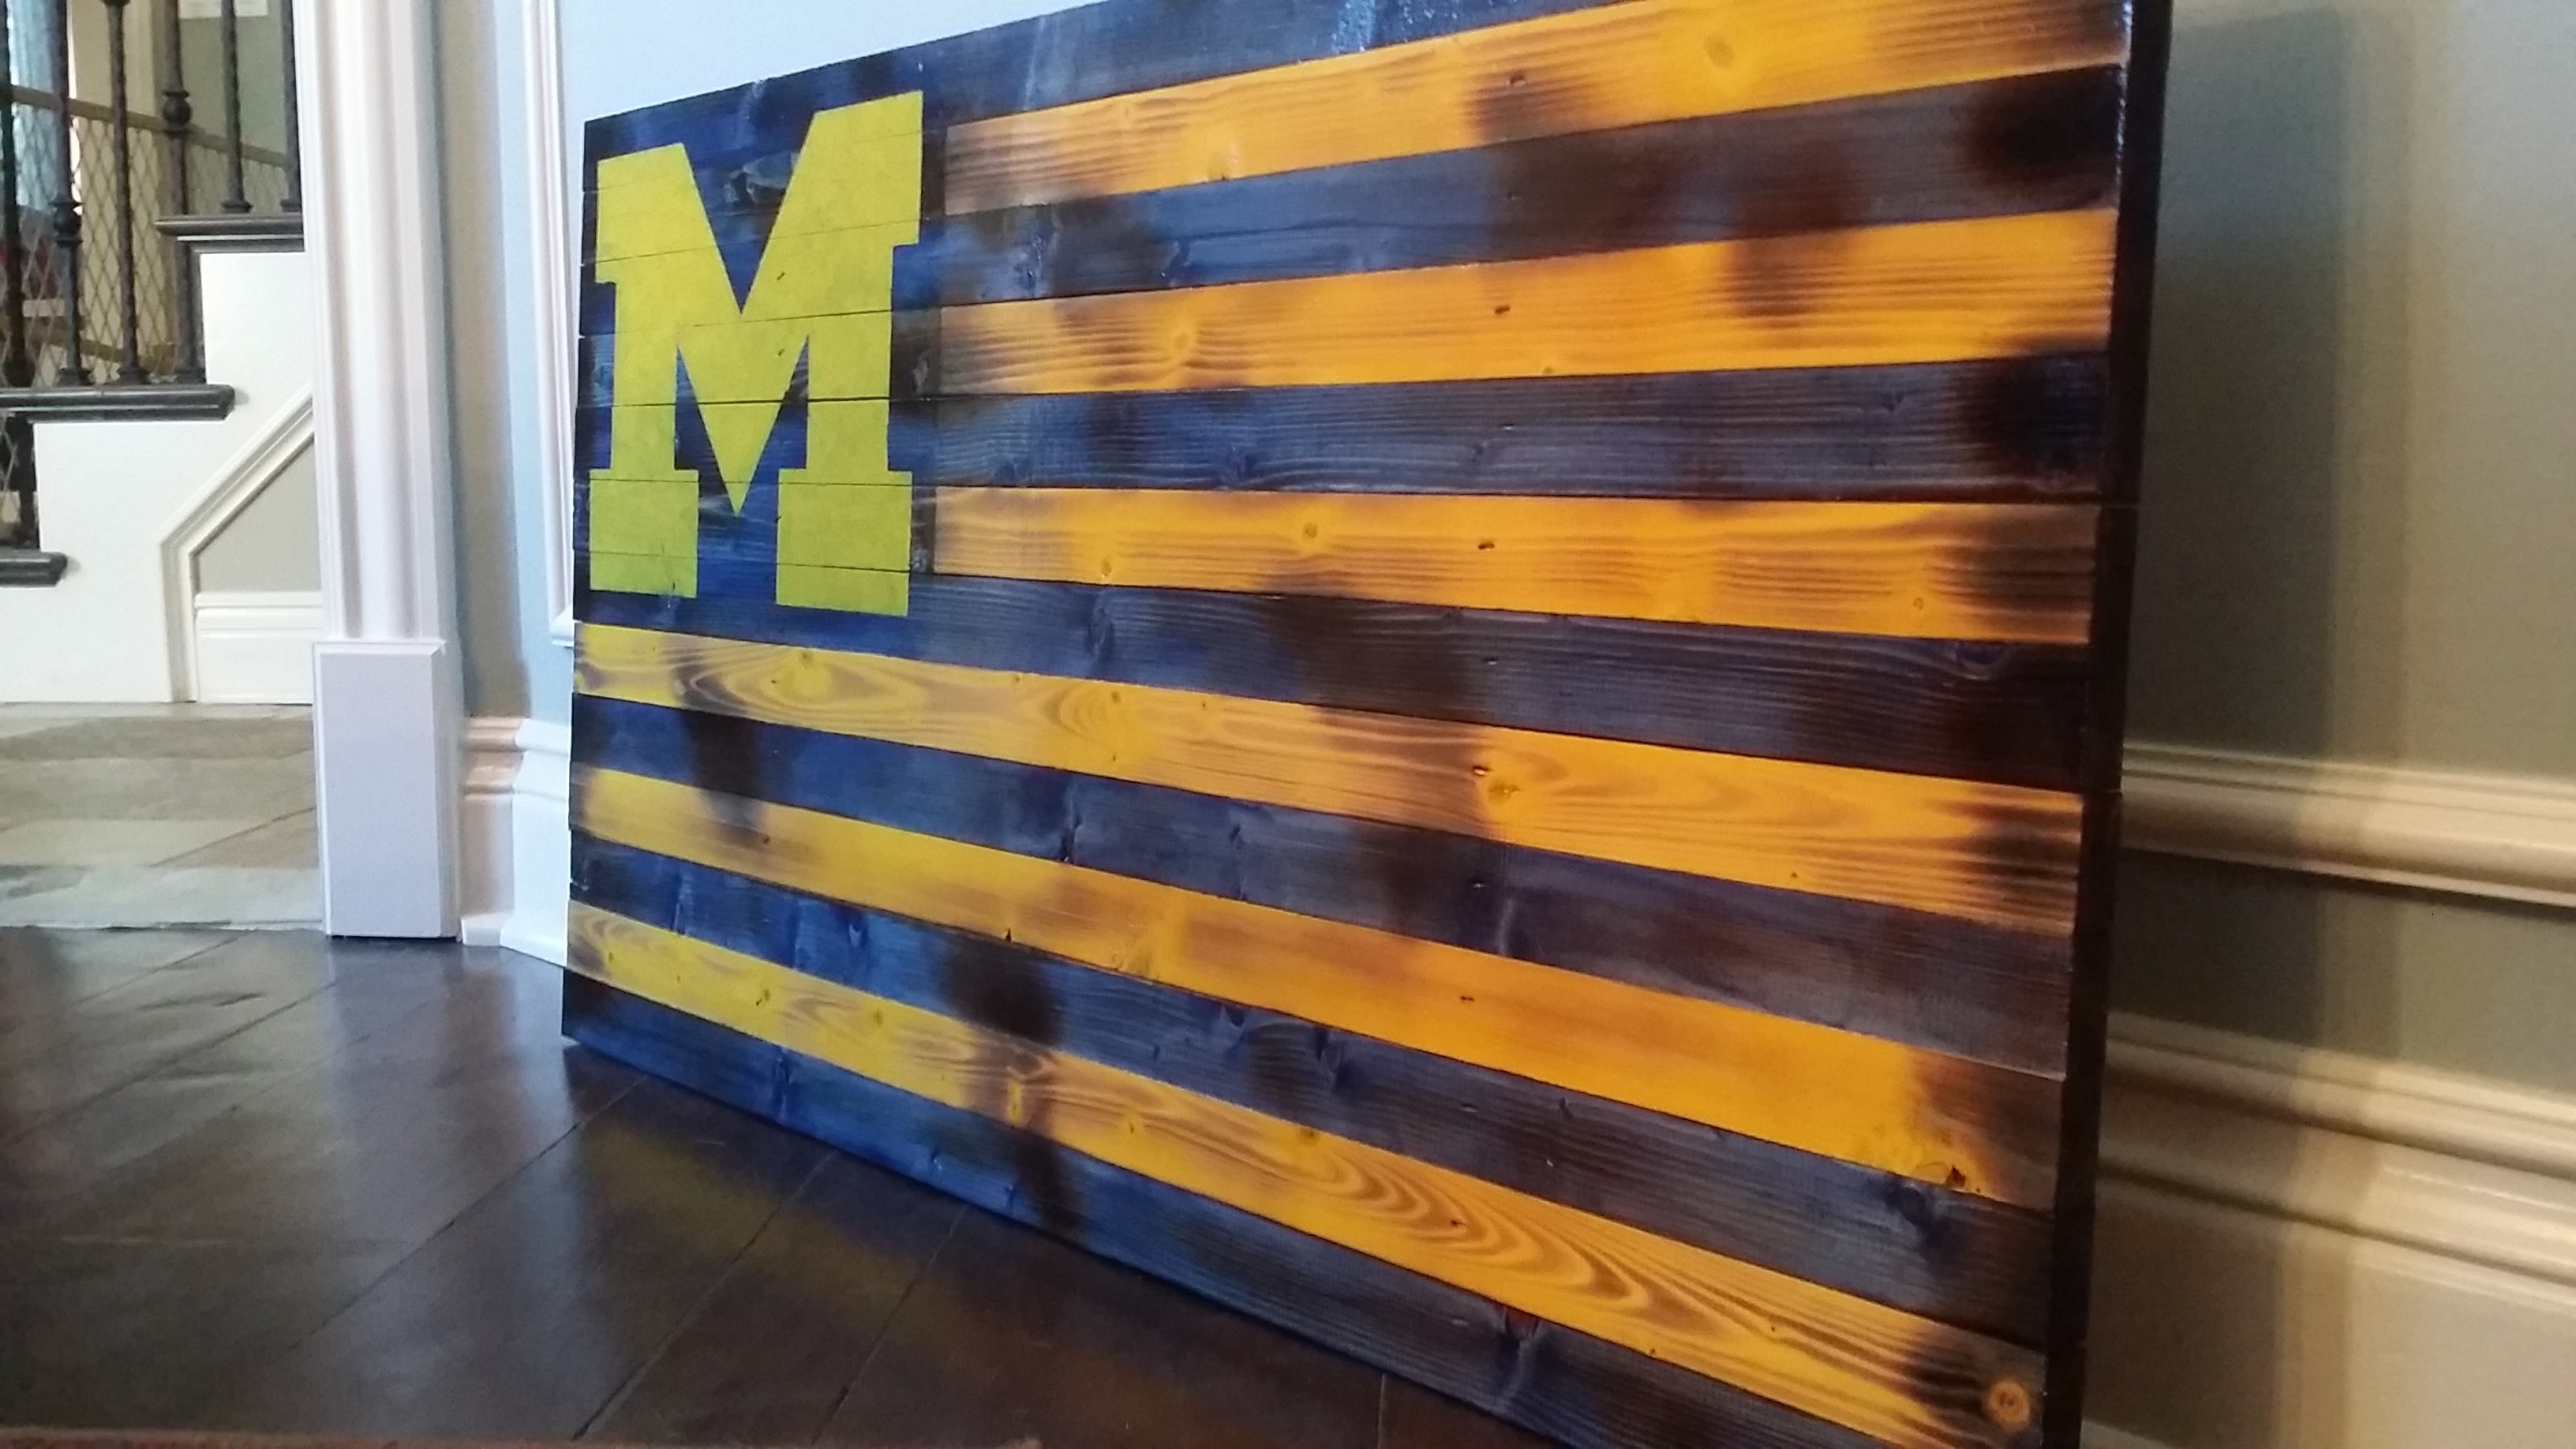 Rustic U Of M Flag With Regard To Current Michigan Wall Art (Gallery 2 of 20)